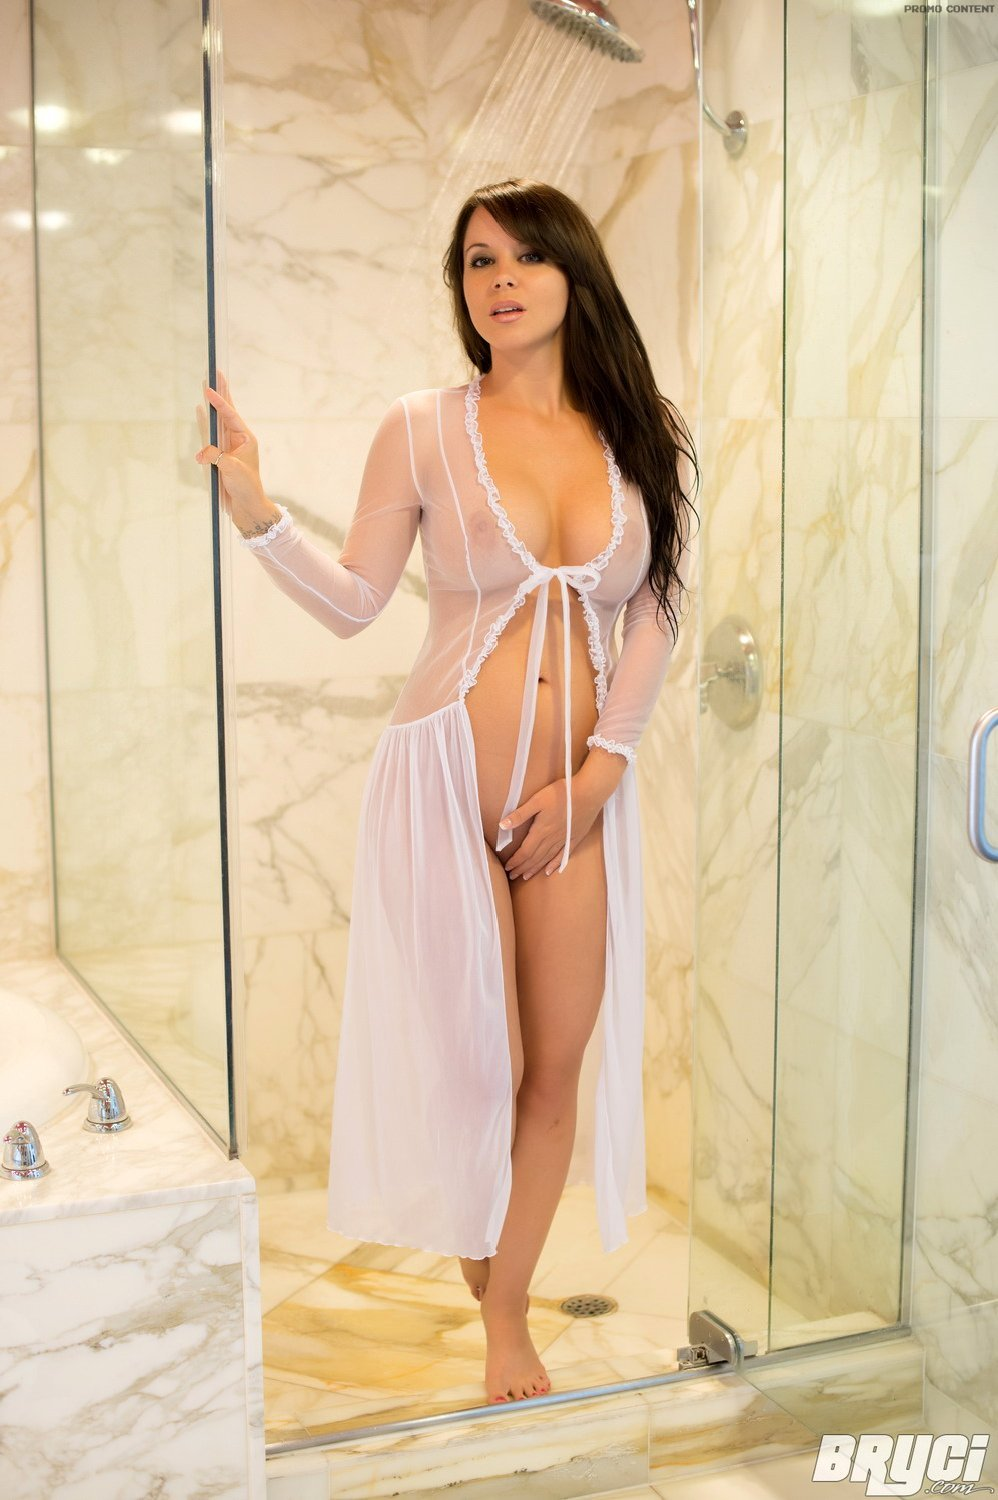 micwild:  Bryci  Come and take a shower with me